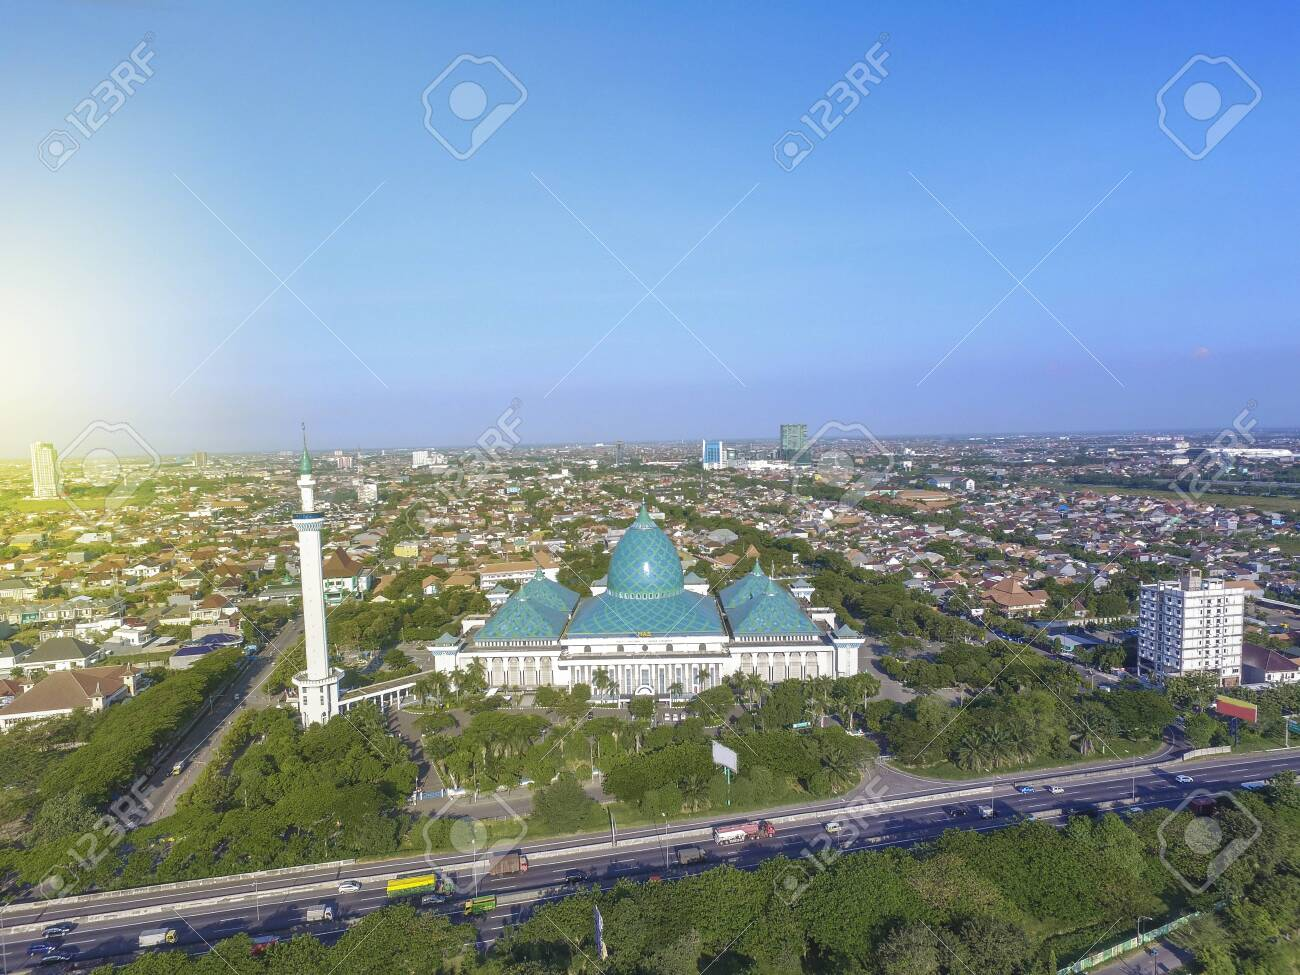 aerial al akbar mosque surabaya is a located in surabaya indonesia stock photo picture and royalty free image image 123567294 123rf com